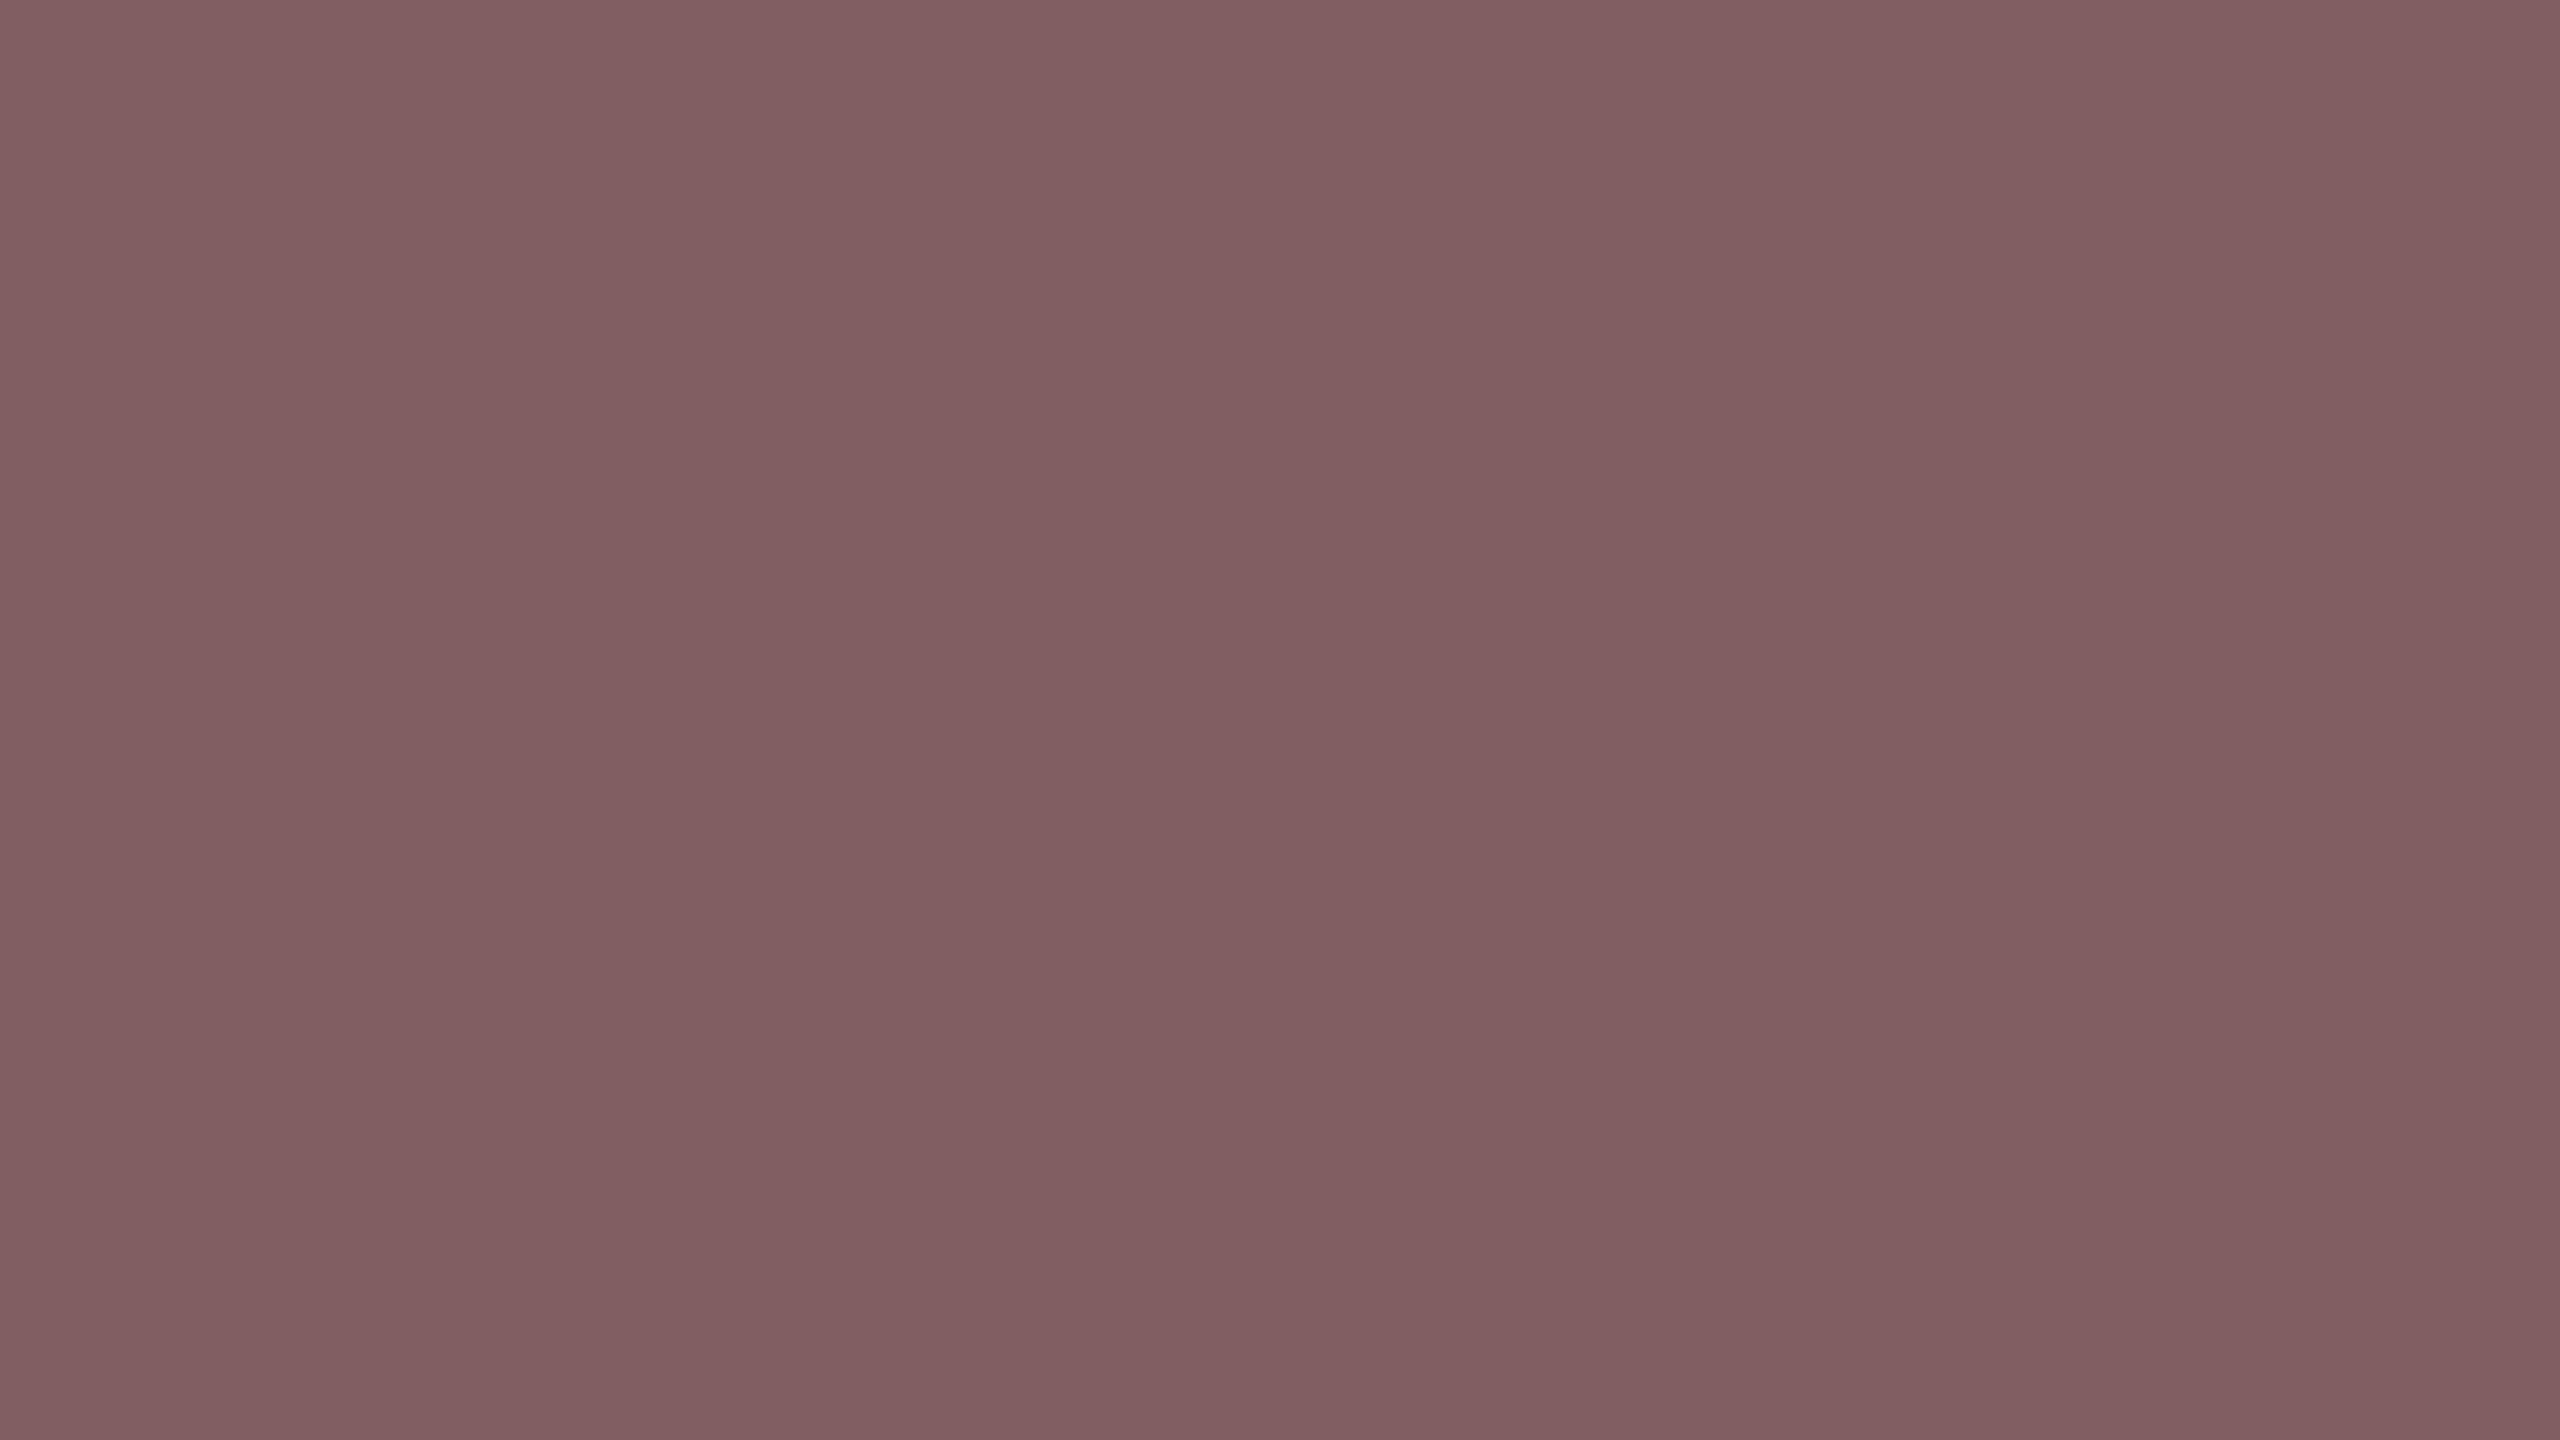 2560x1440 Deep Taupe Solid Color Background